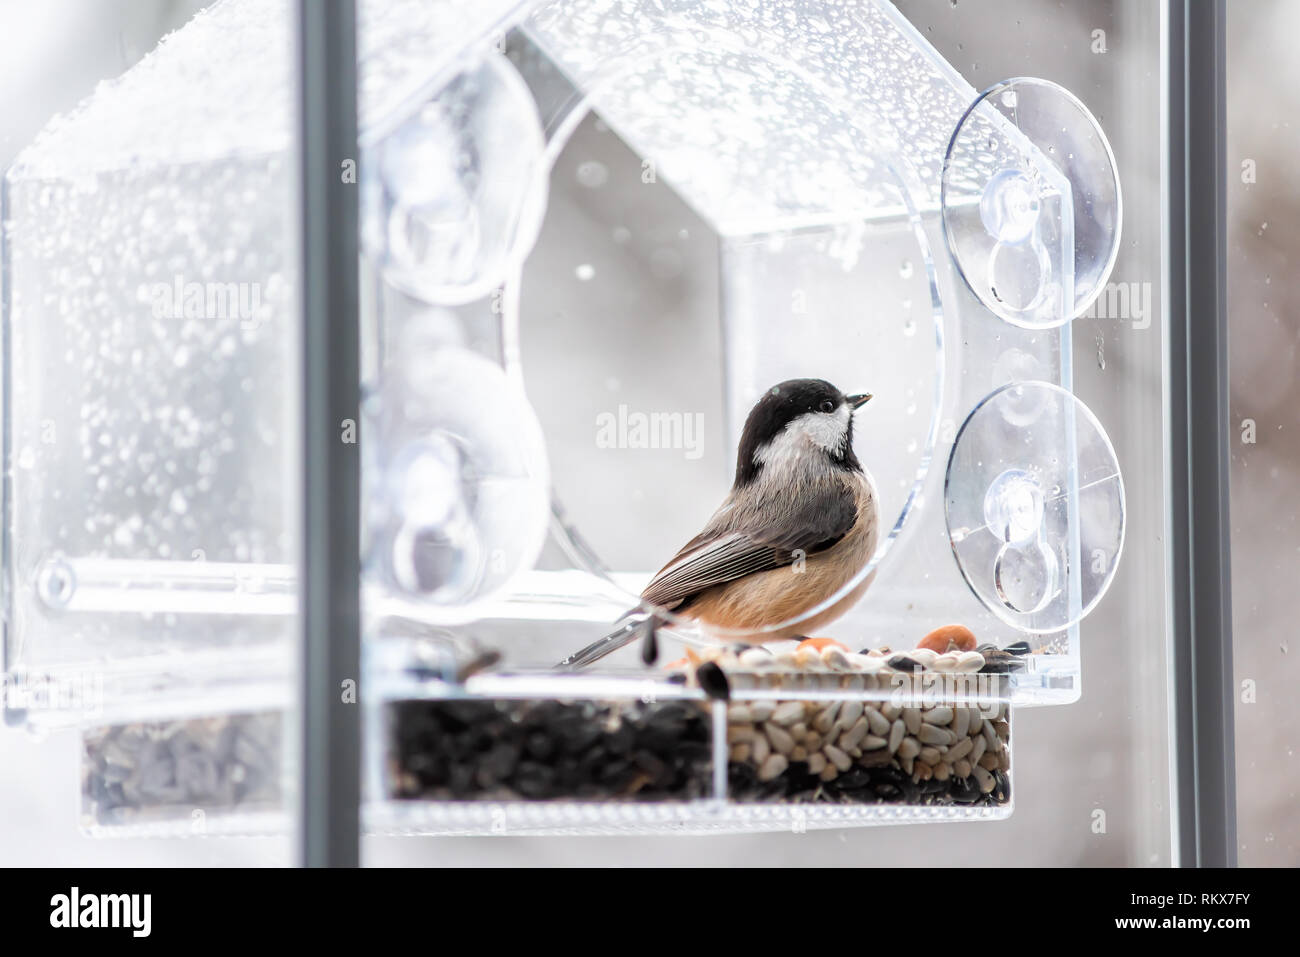 Closeup of black-capped or carolina chickadee bird perched on plastic glass window feeder looking during winter snow or rain in Virginia with seeds - Stock Image